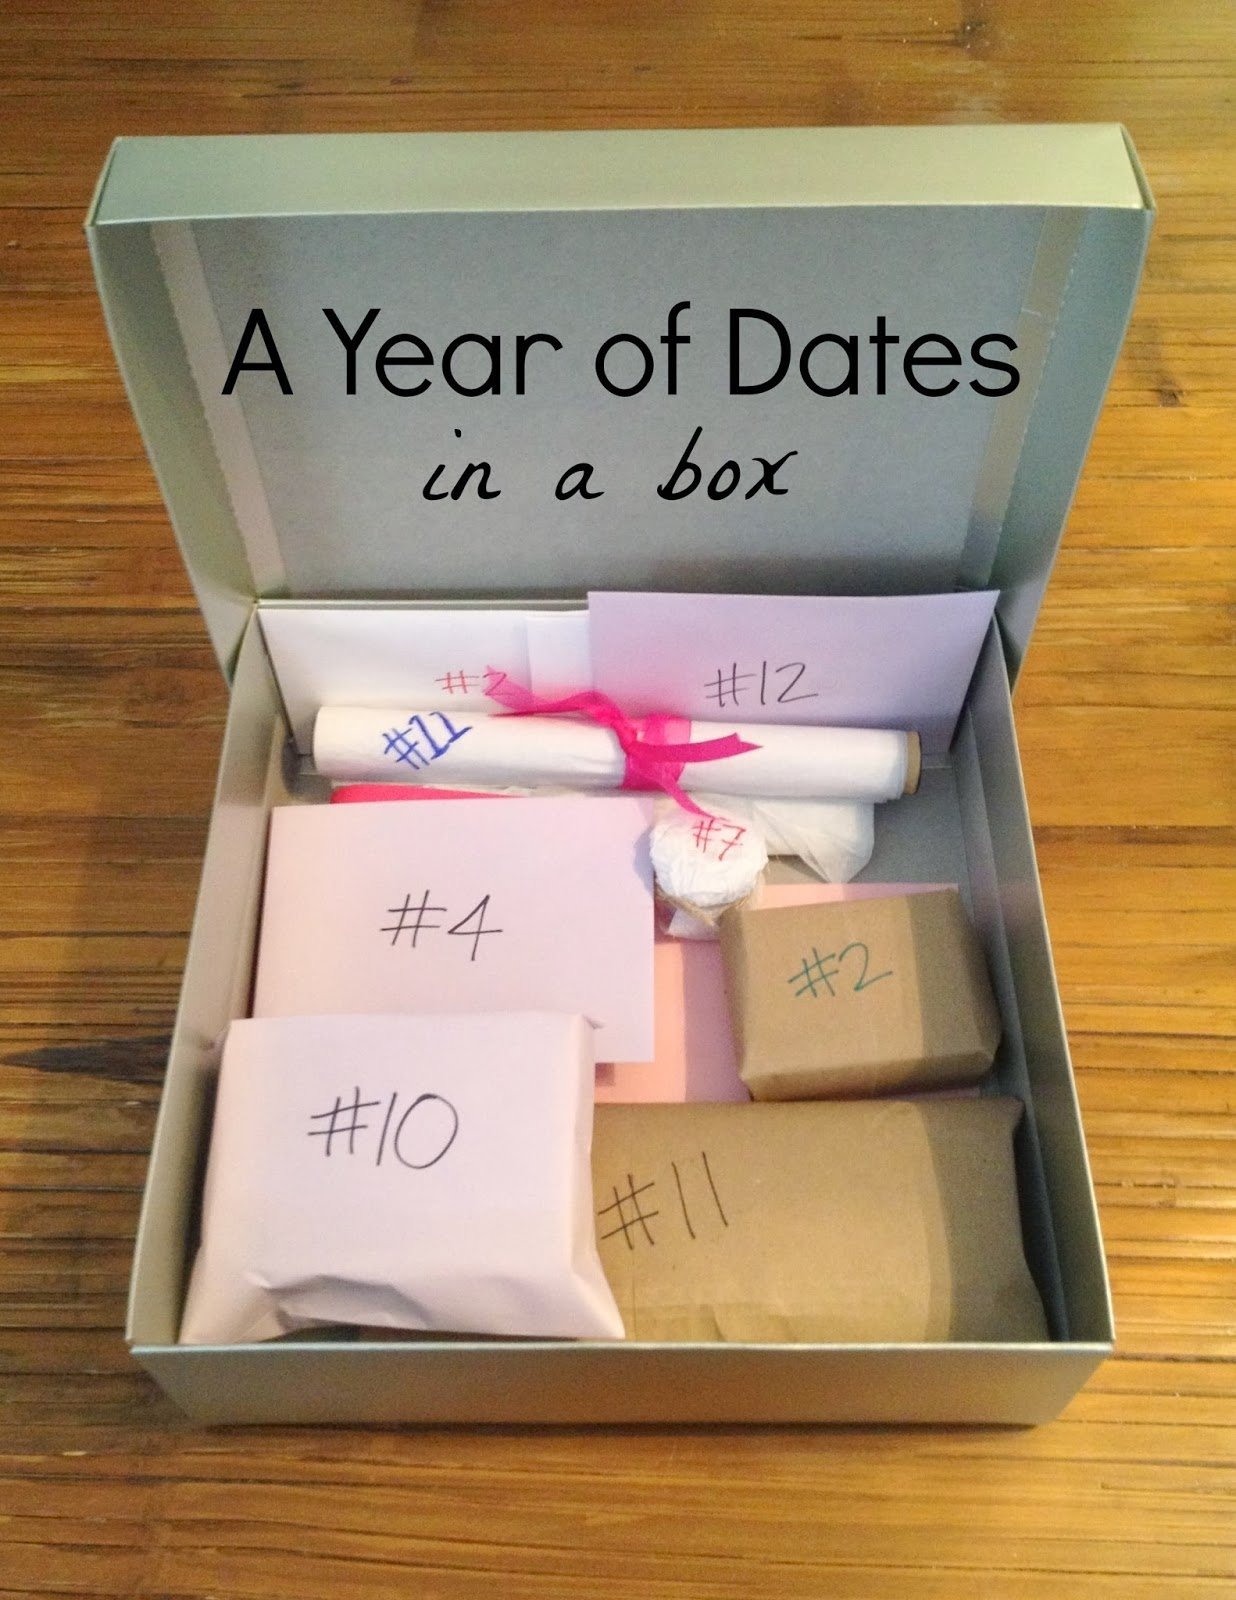 10 Fashionable One Year Anniversary Date Ideas the babes ruth a year of dates in a box 2